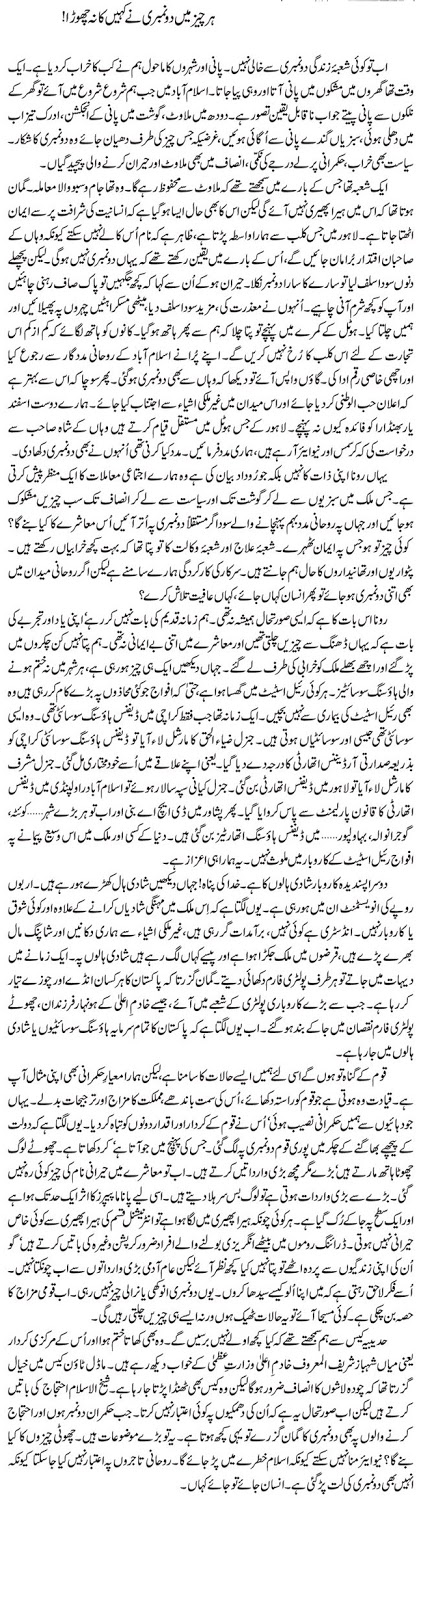 society and social structure of pakistan in urdu